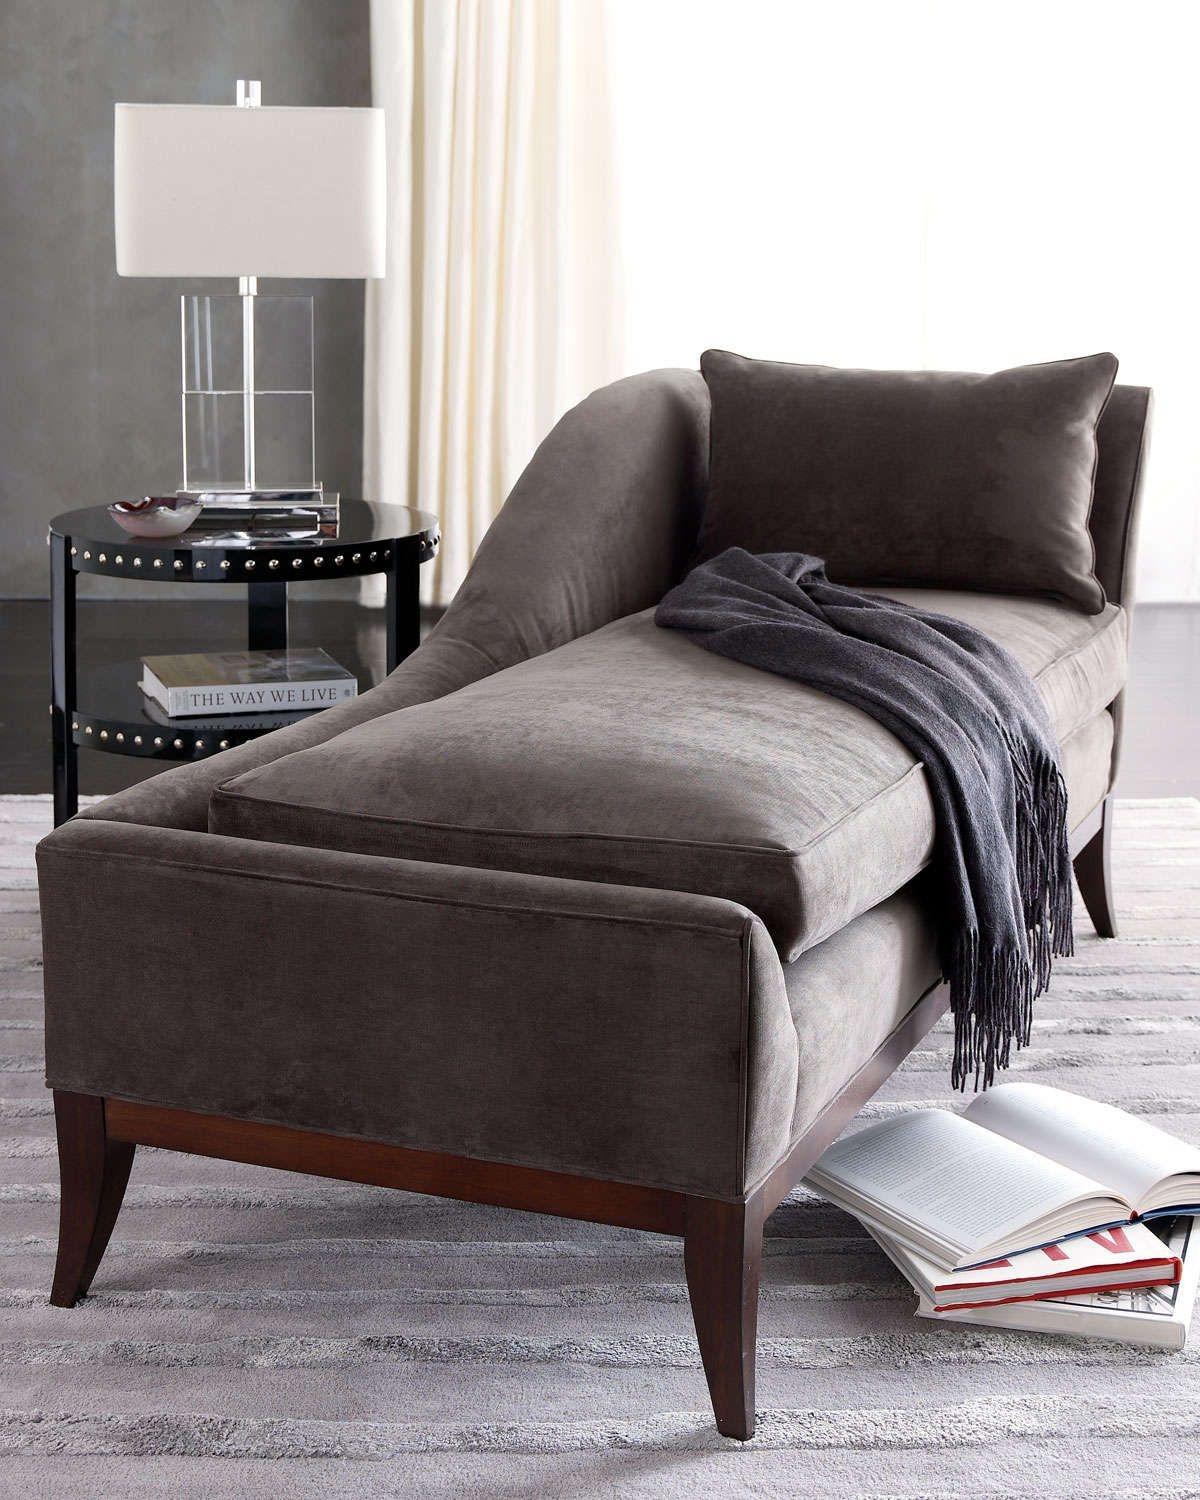 Delicieux Small Leather Chaise Lounge